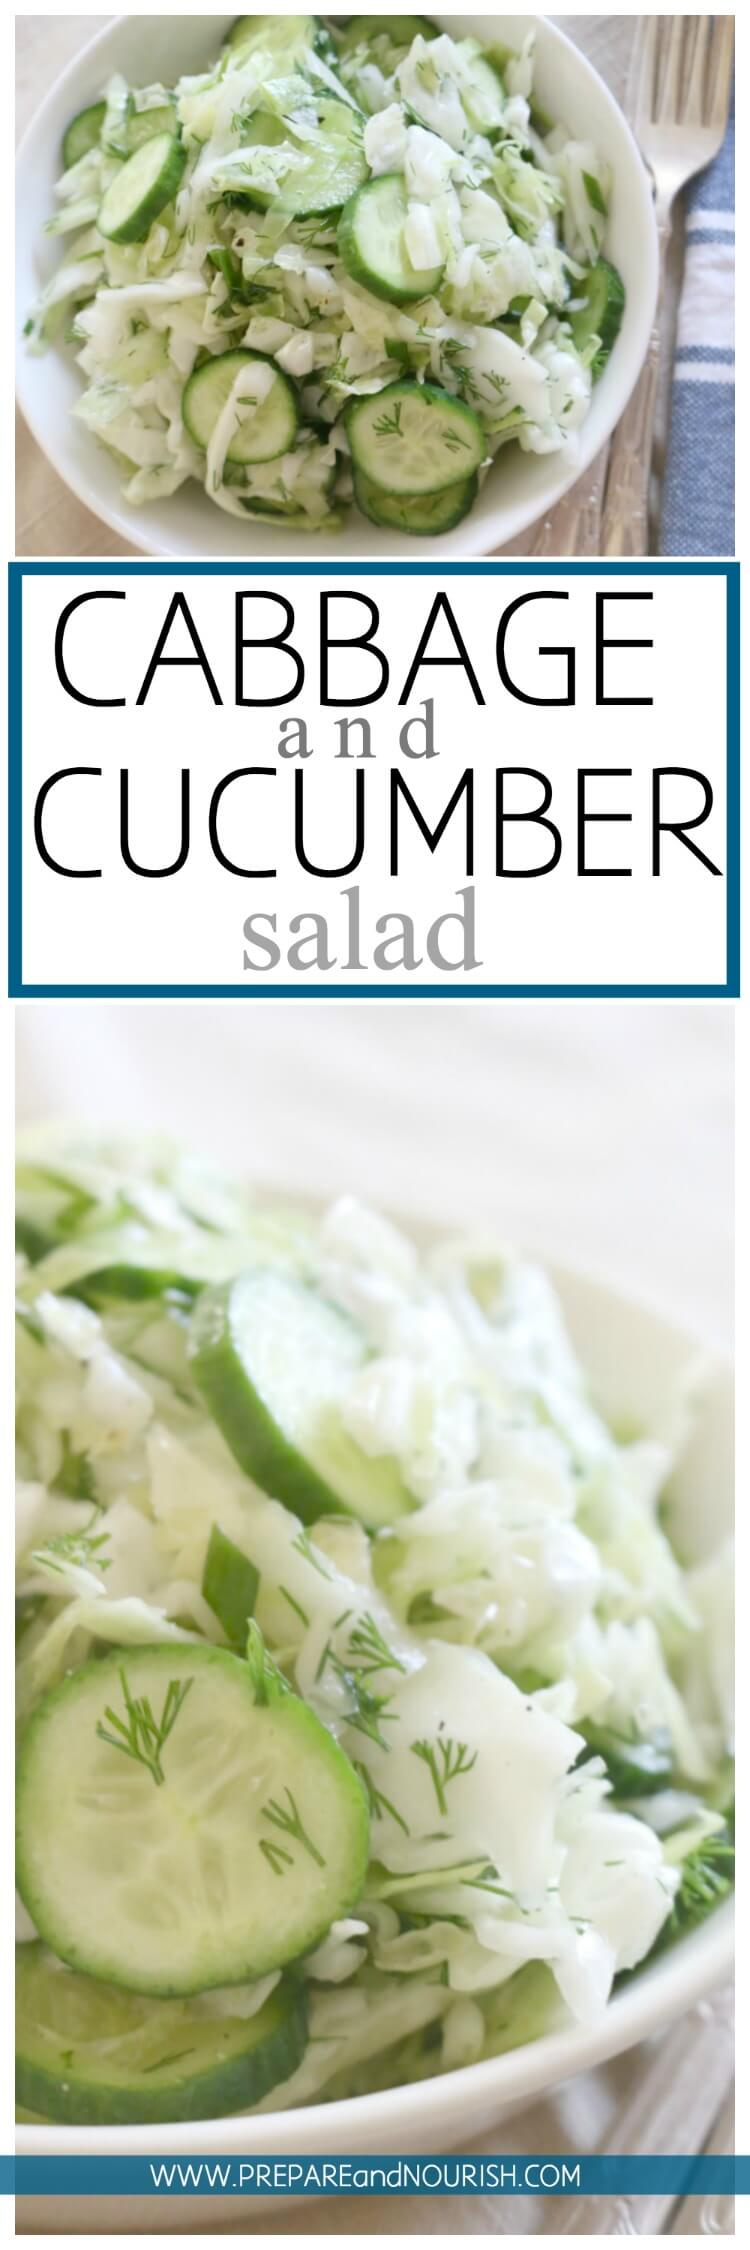 Low Carb Cabbage and Cucumber Salad - This cabbage salad is seriously loaded with crunch, zest and deliciousness. Made with simple ingredients and has a longer shelf life than most salads, this salad is a fun party food. #paleo #partysalad #keto